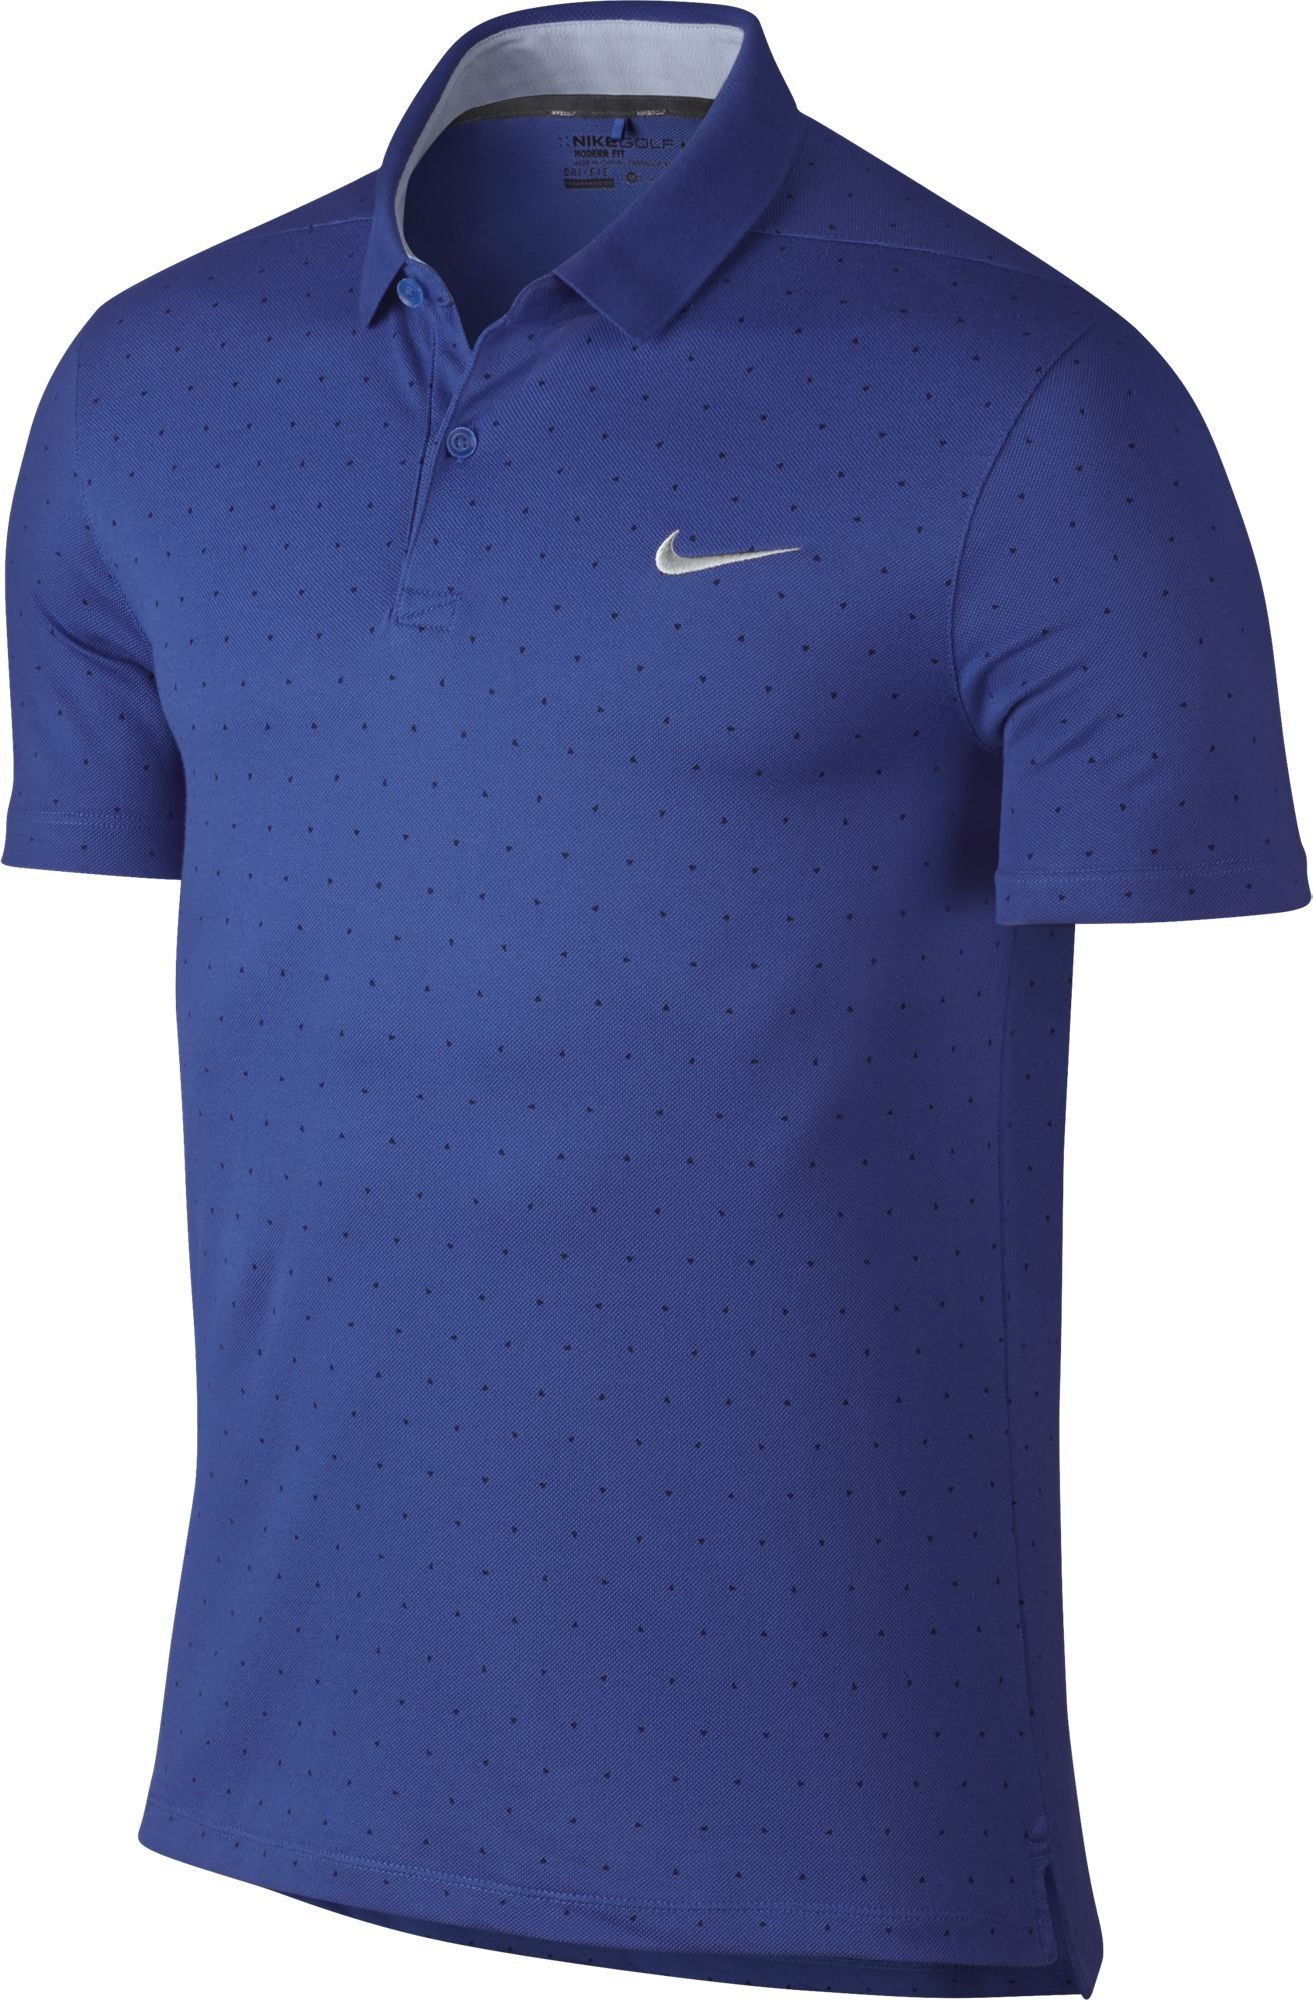 2016 nike modern fit transition dry print golf polo men 39 s Modern fit golf shirt